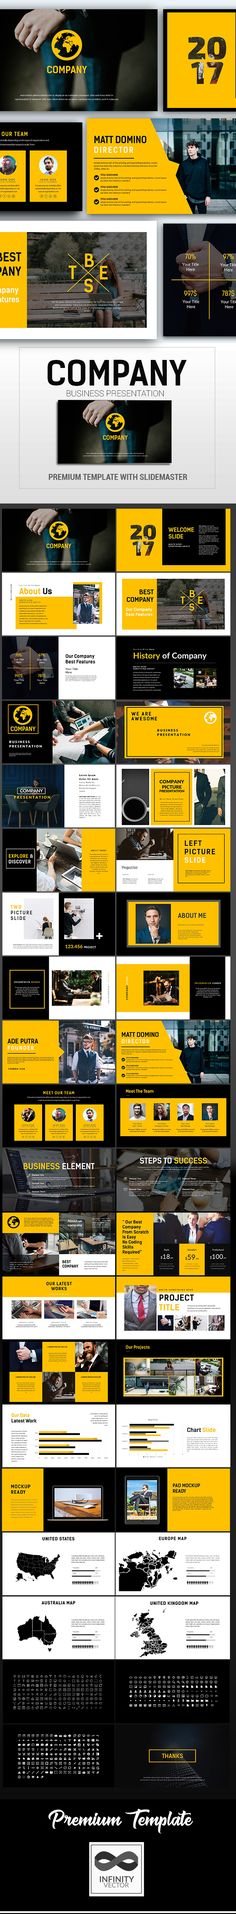 #Company Business Presentation #Google #Slide - Google Slides Presentation Templates